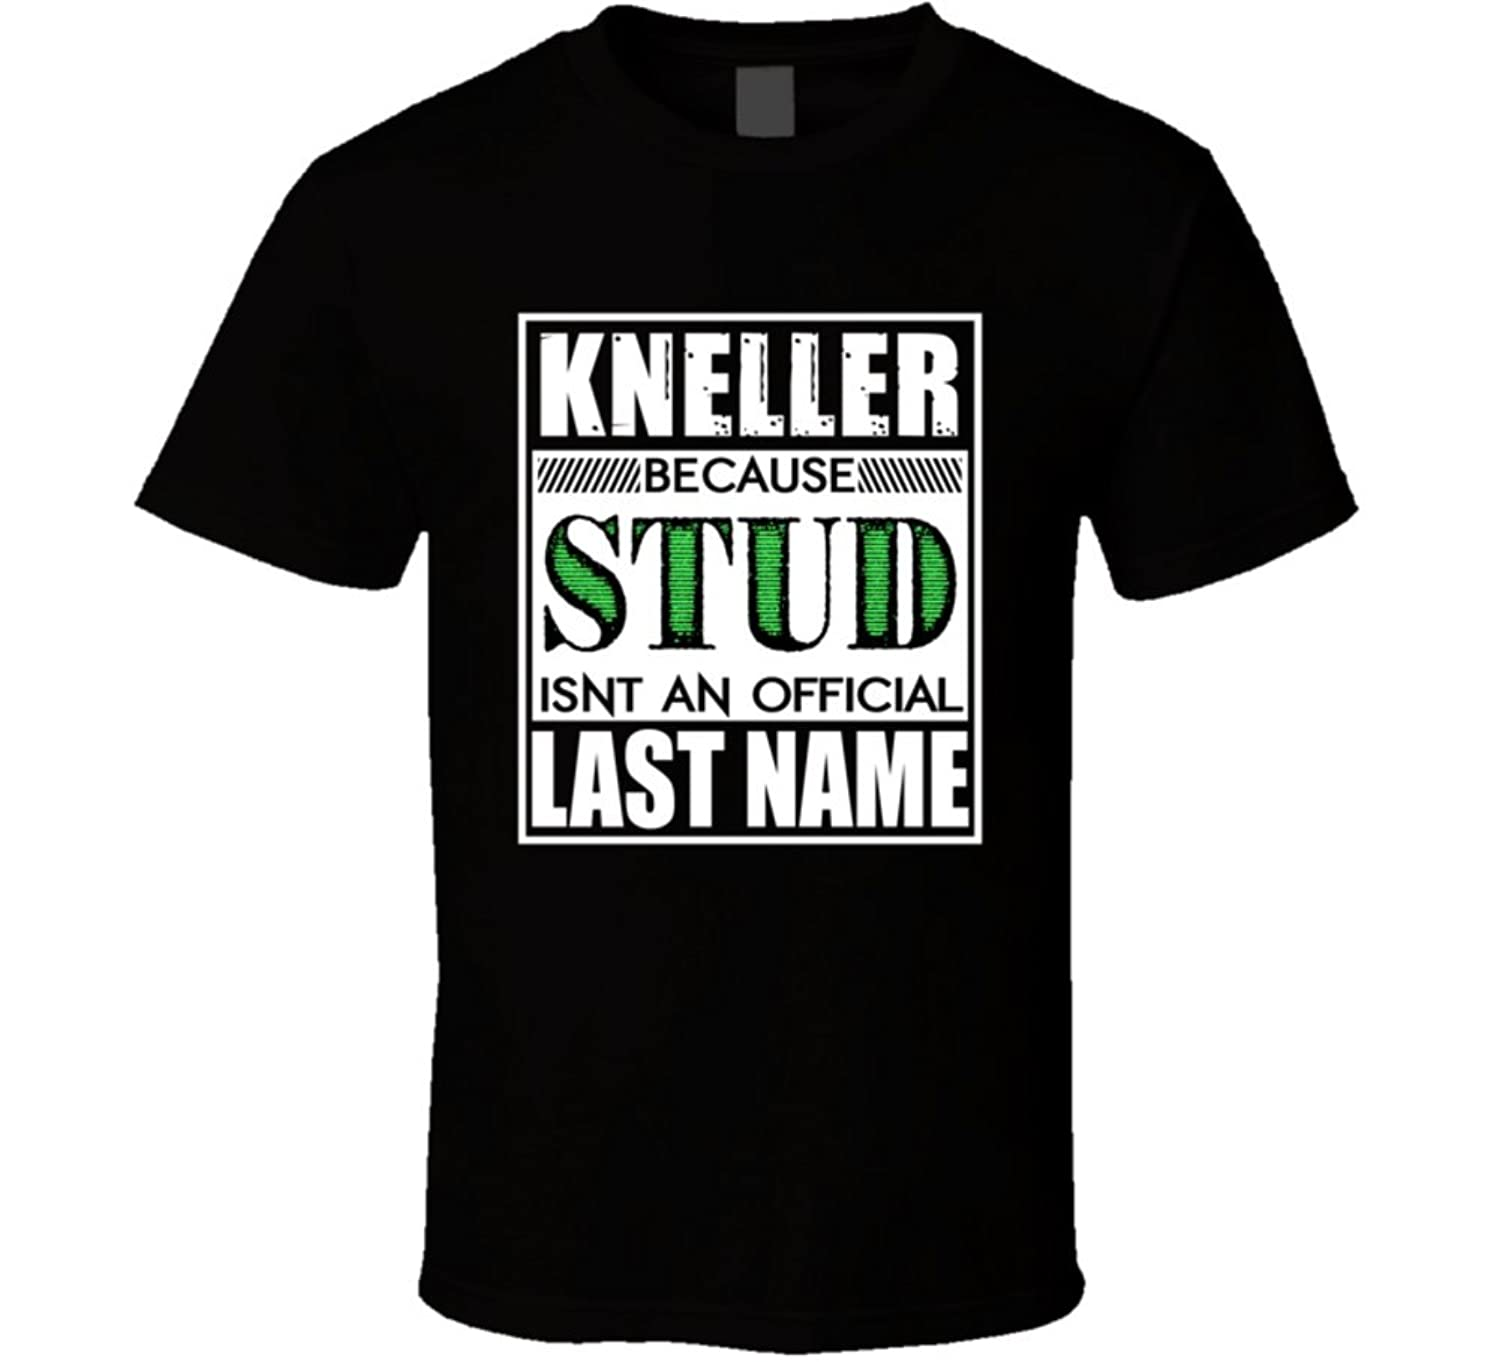 Kneller Because Stud official Last Name Funny T Shirt